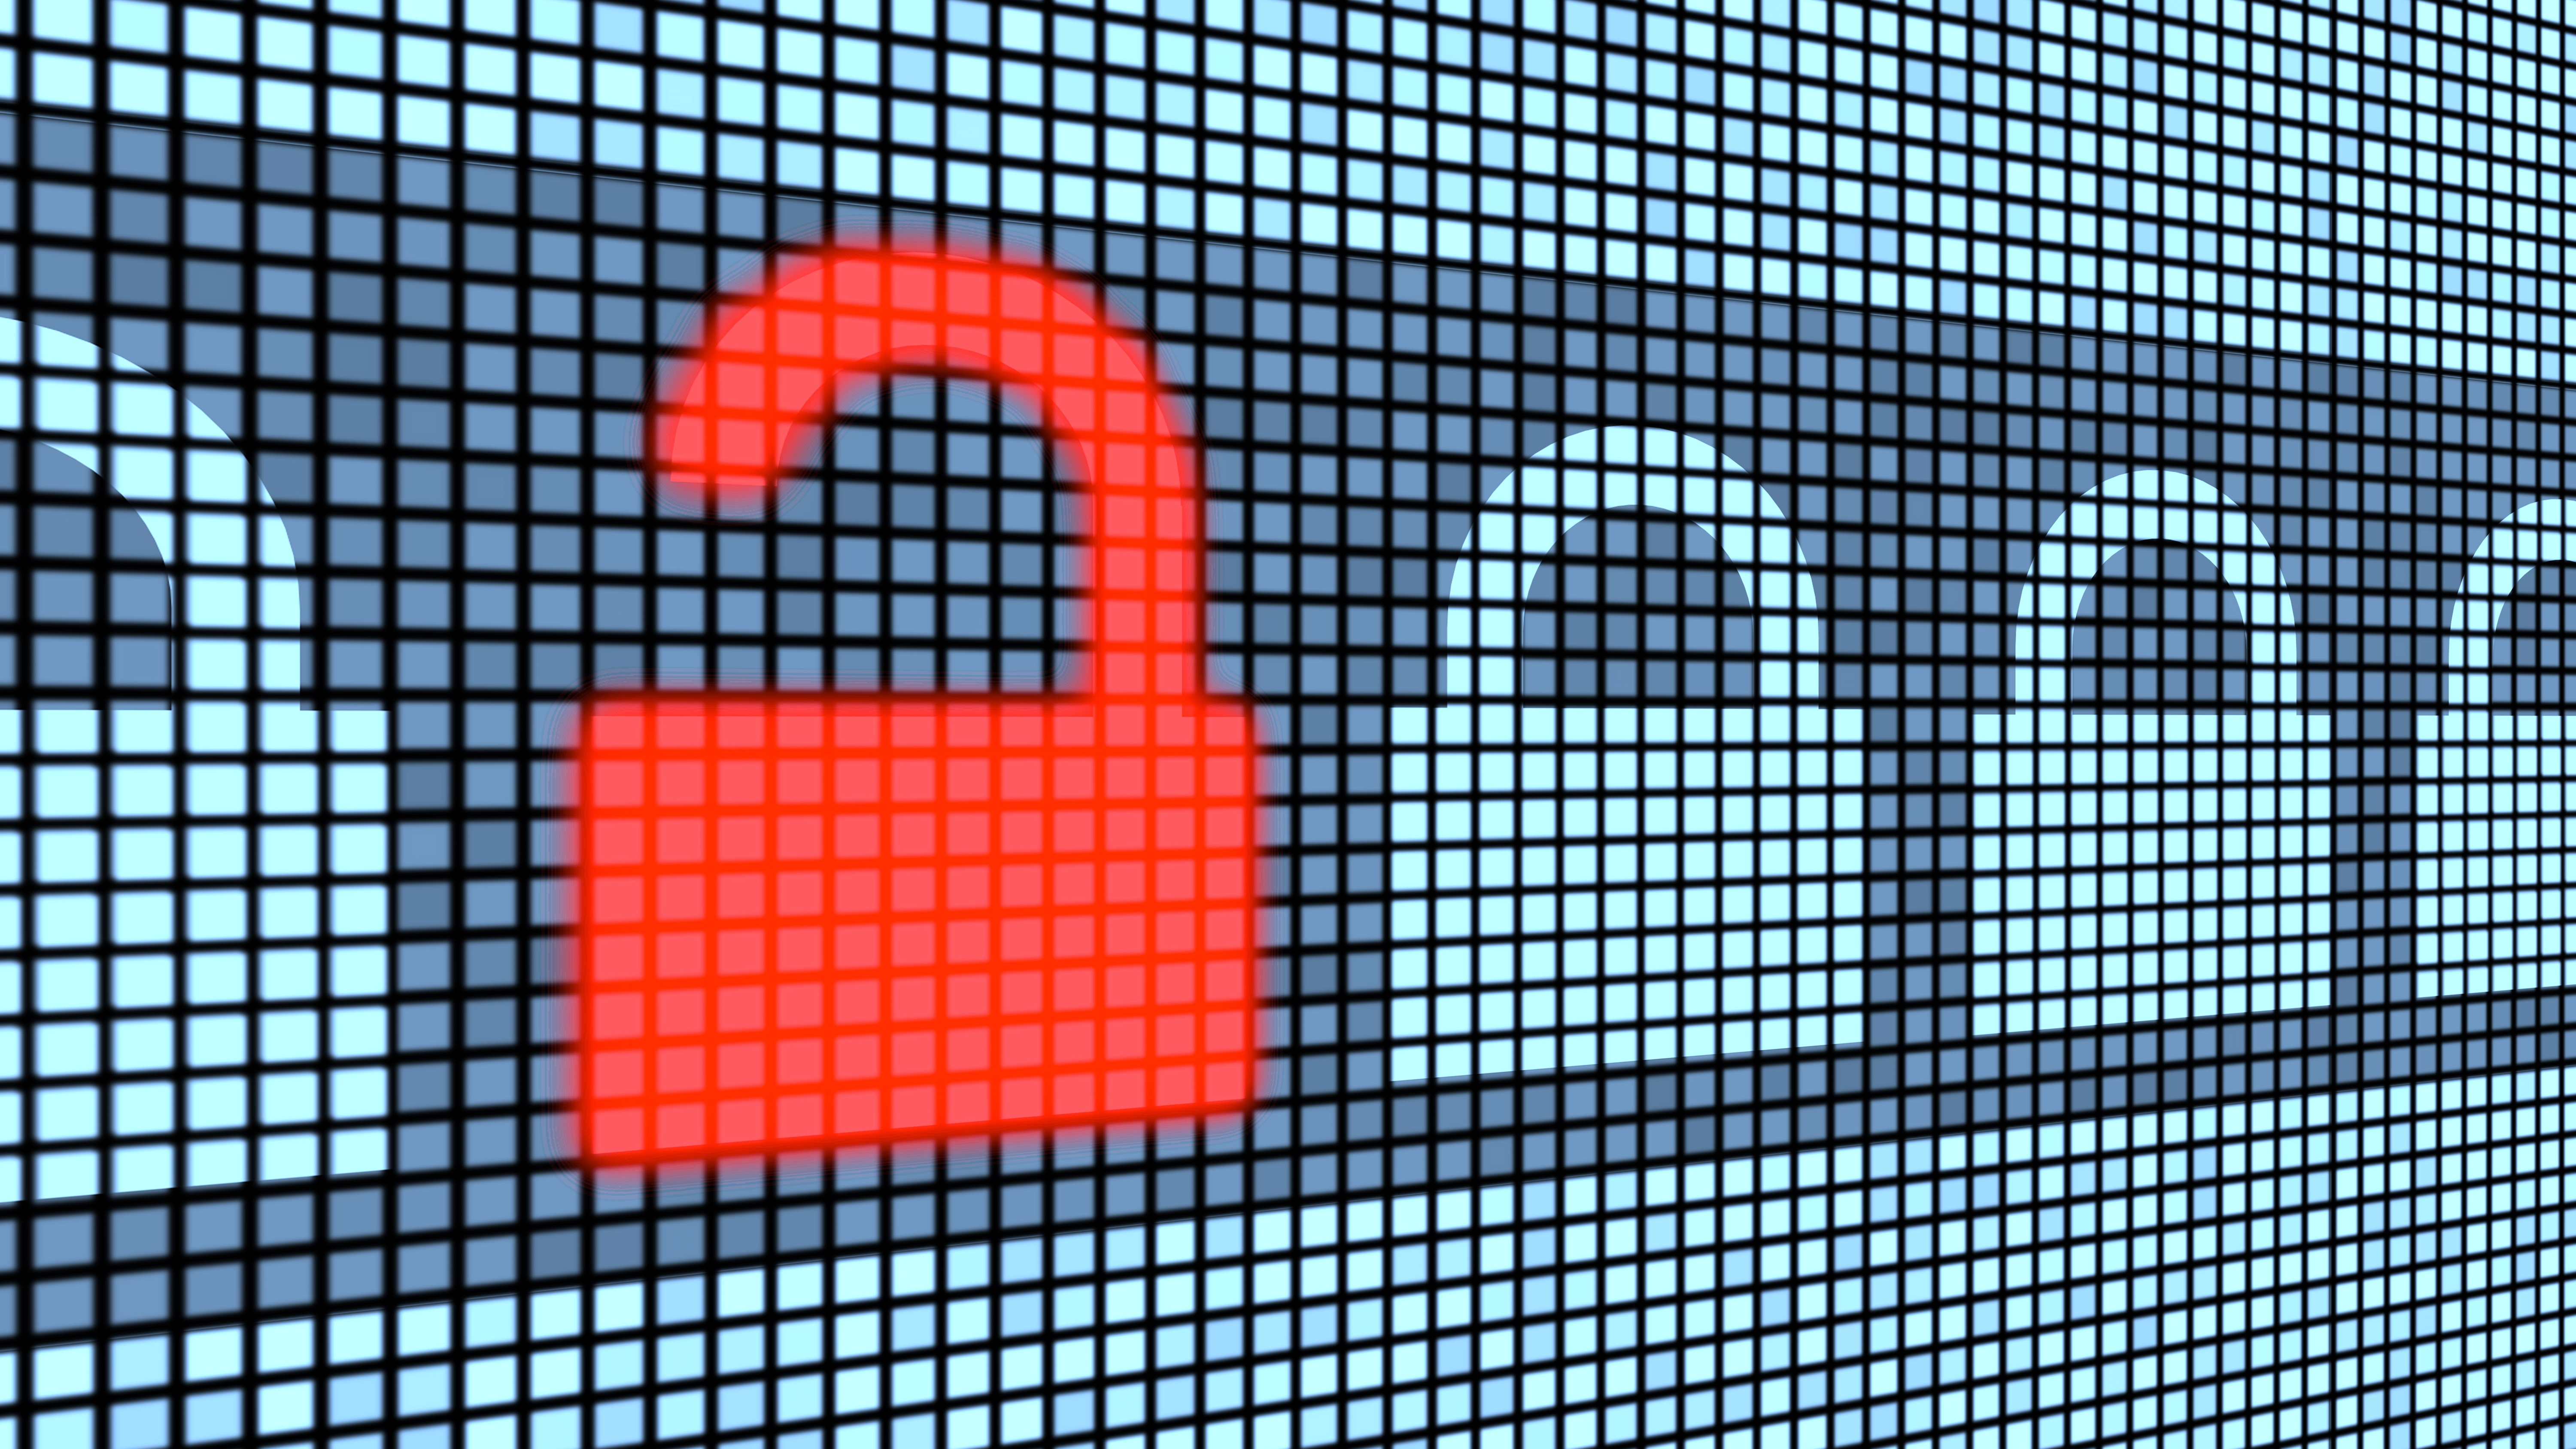 Nearly a million UK SMEs suffered a cyber security breach in